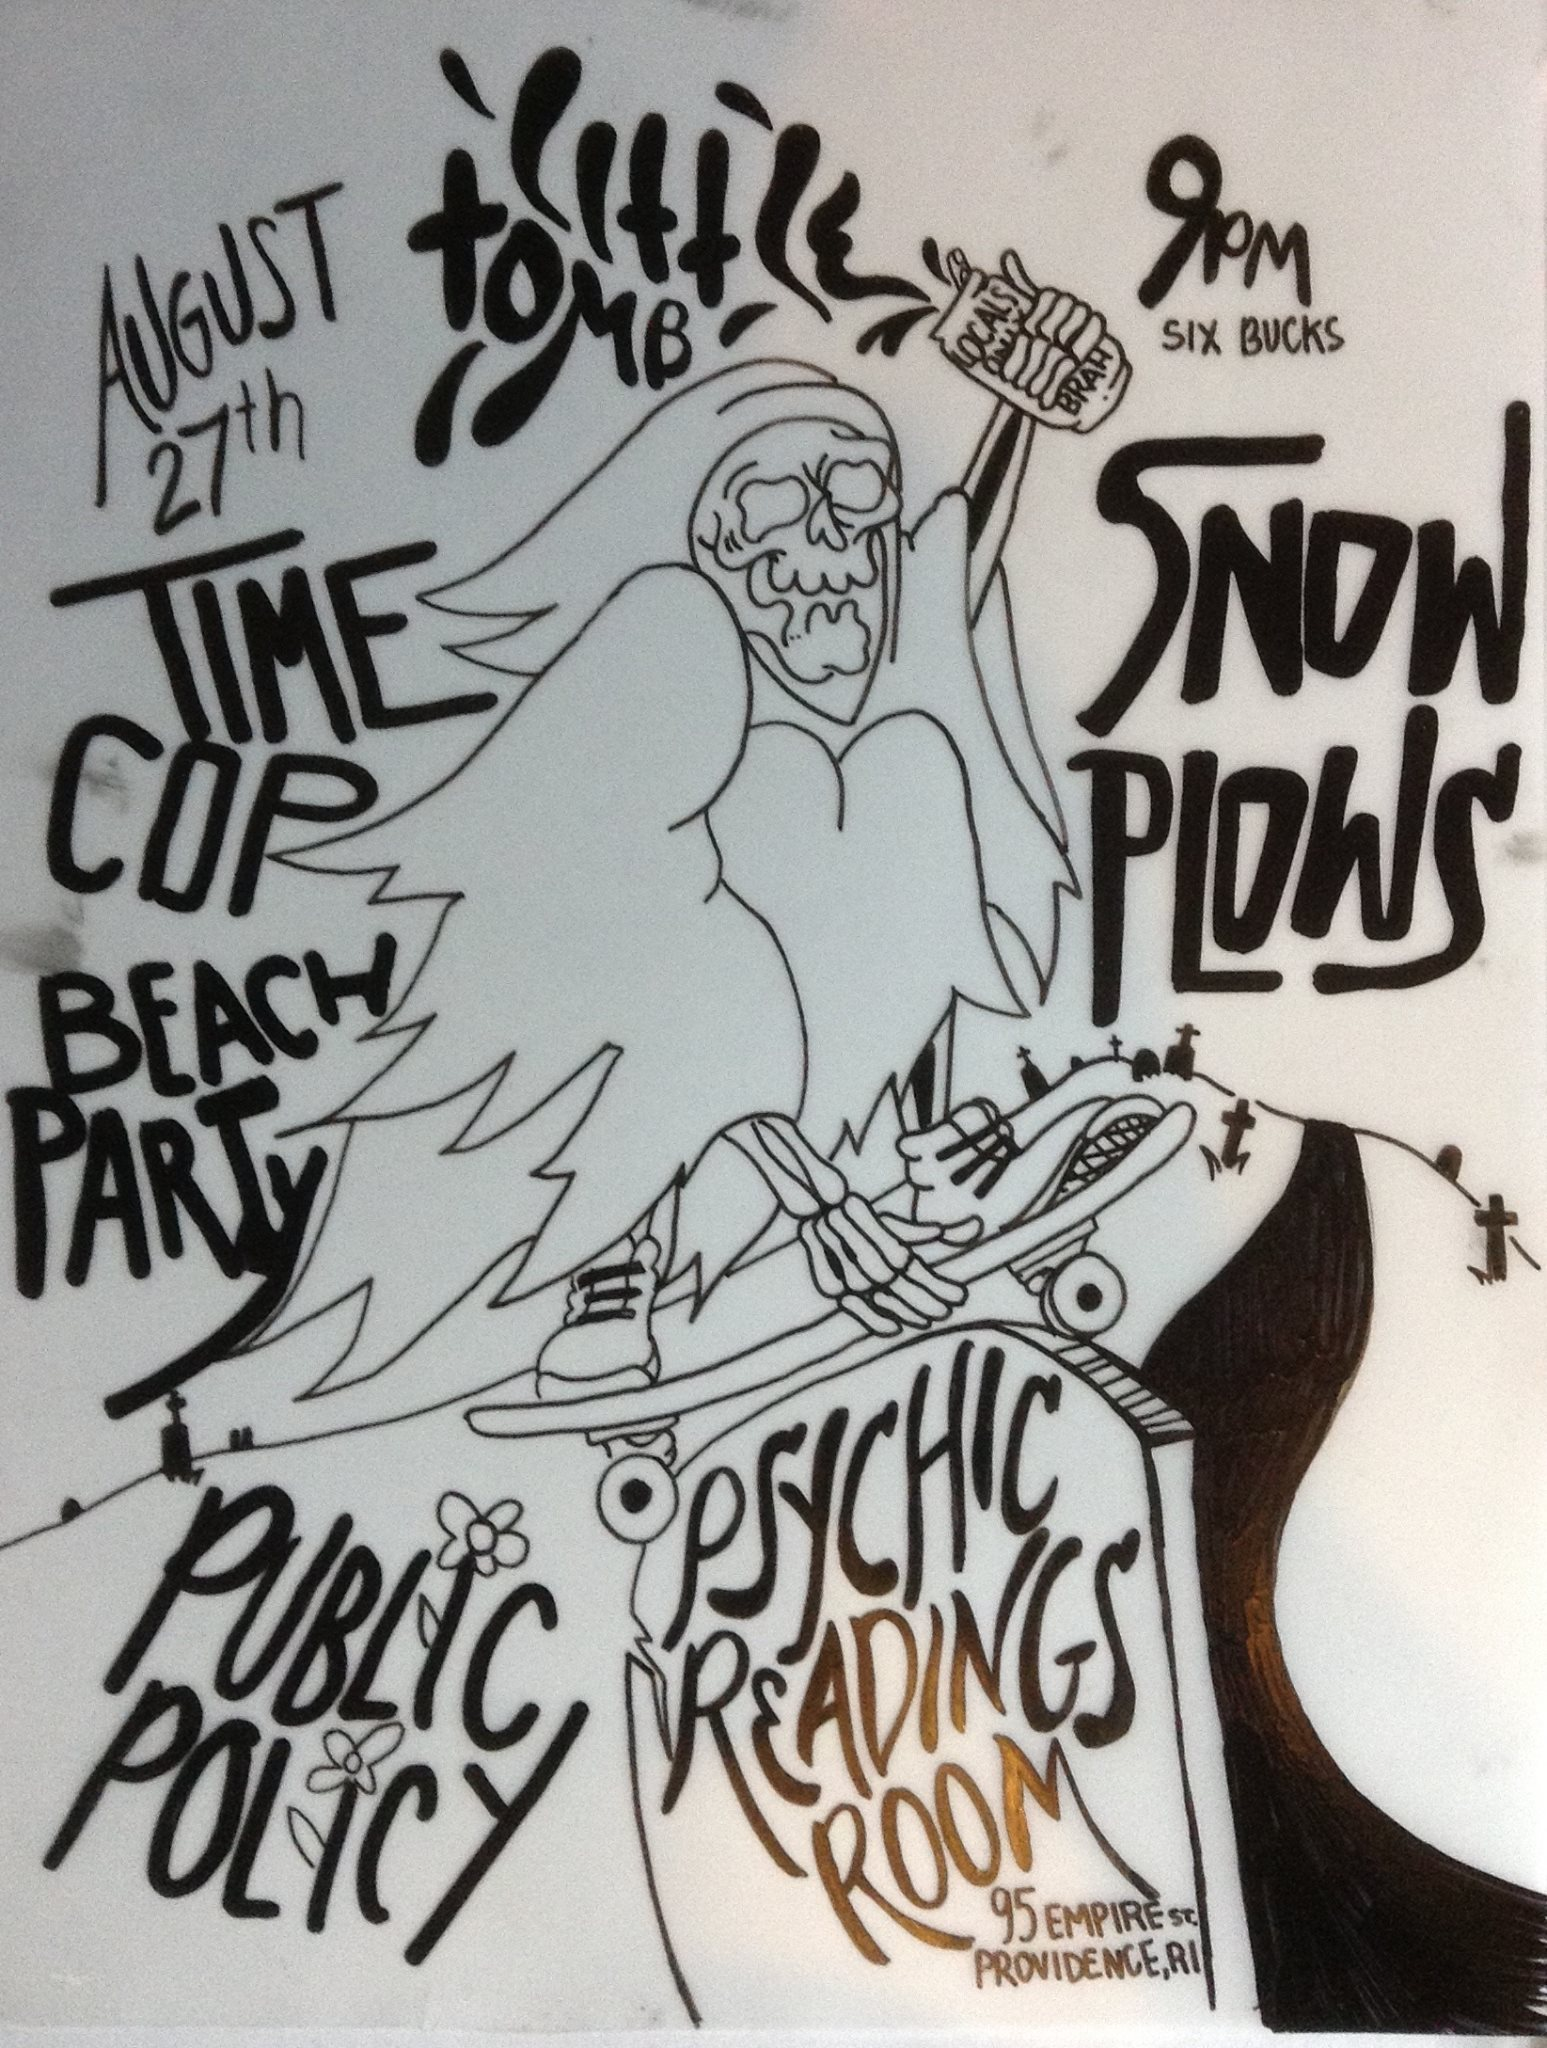 SNOWPLOWS//PUBLIC POLICY//TIMECOP BEACH PARTY//LITTLE TOMB @ Psychic Readings